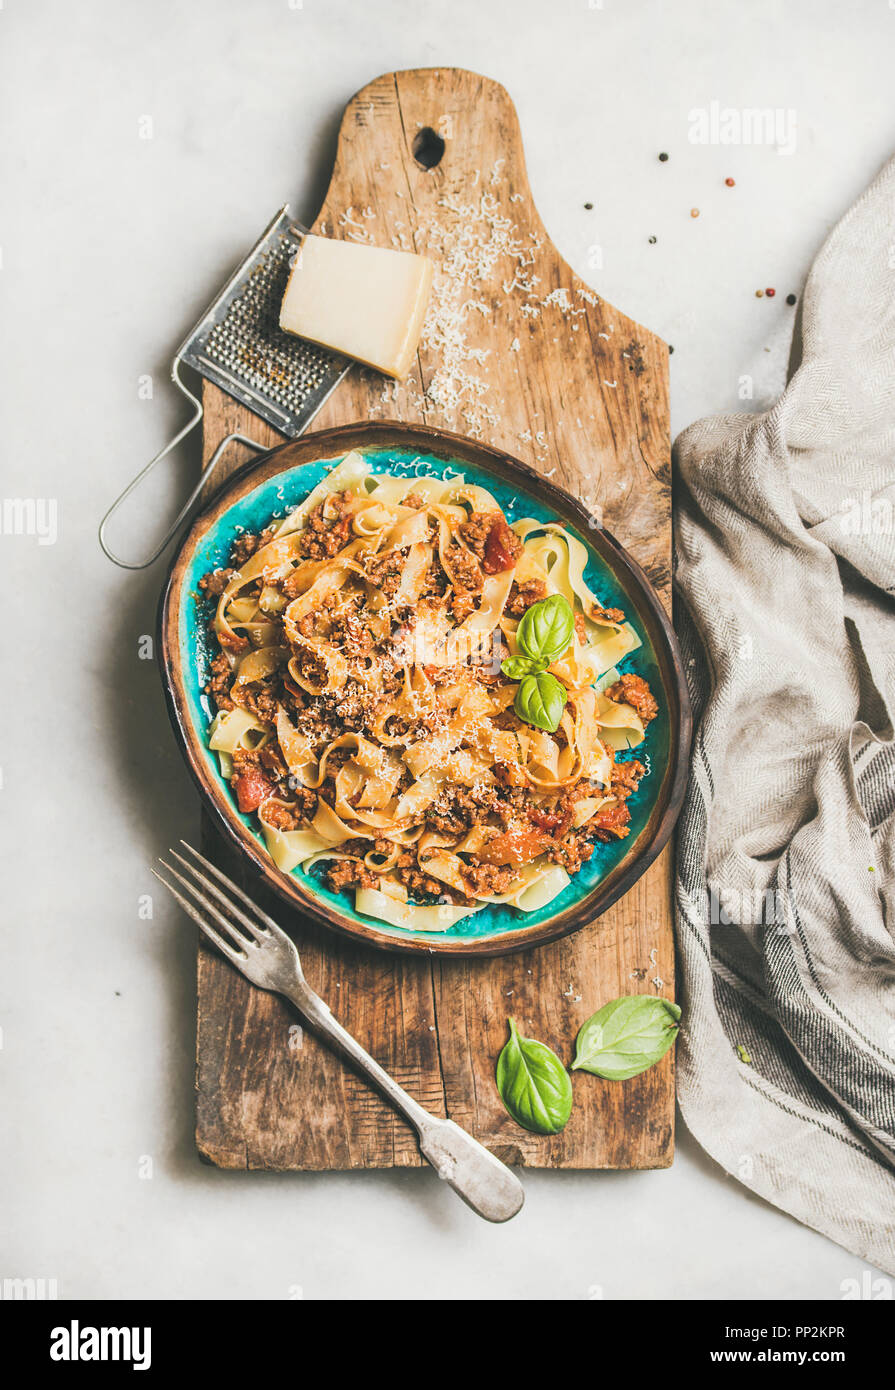 Italian traditional pasta dinner with tagliatelle bolognese, top view - Stock Image